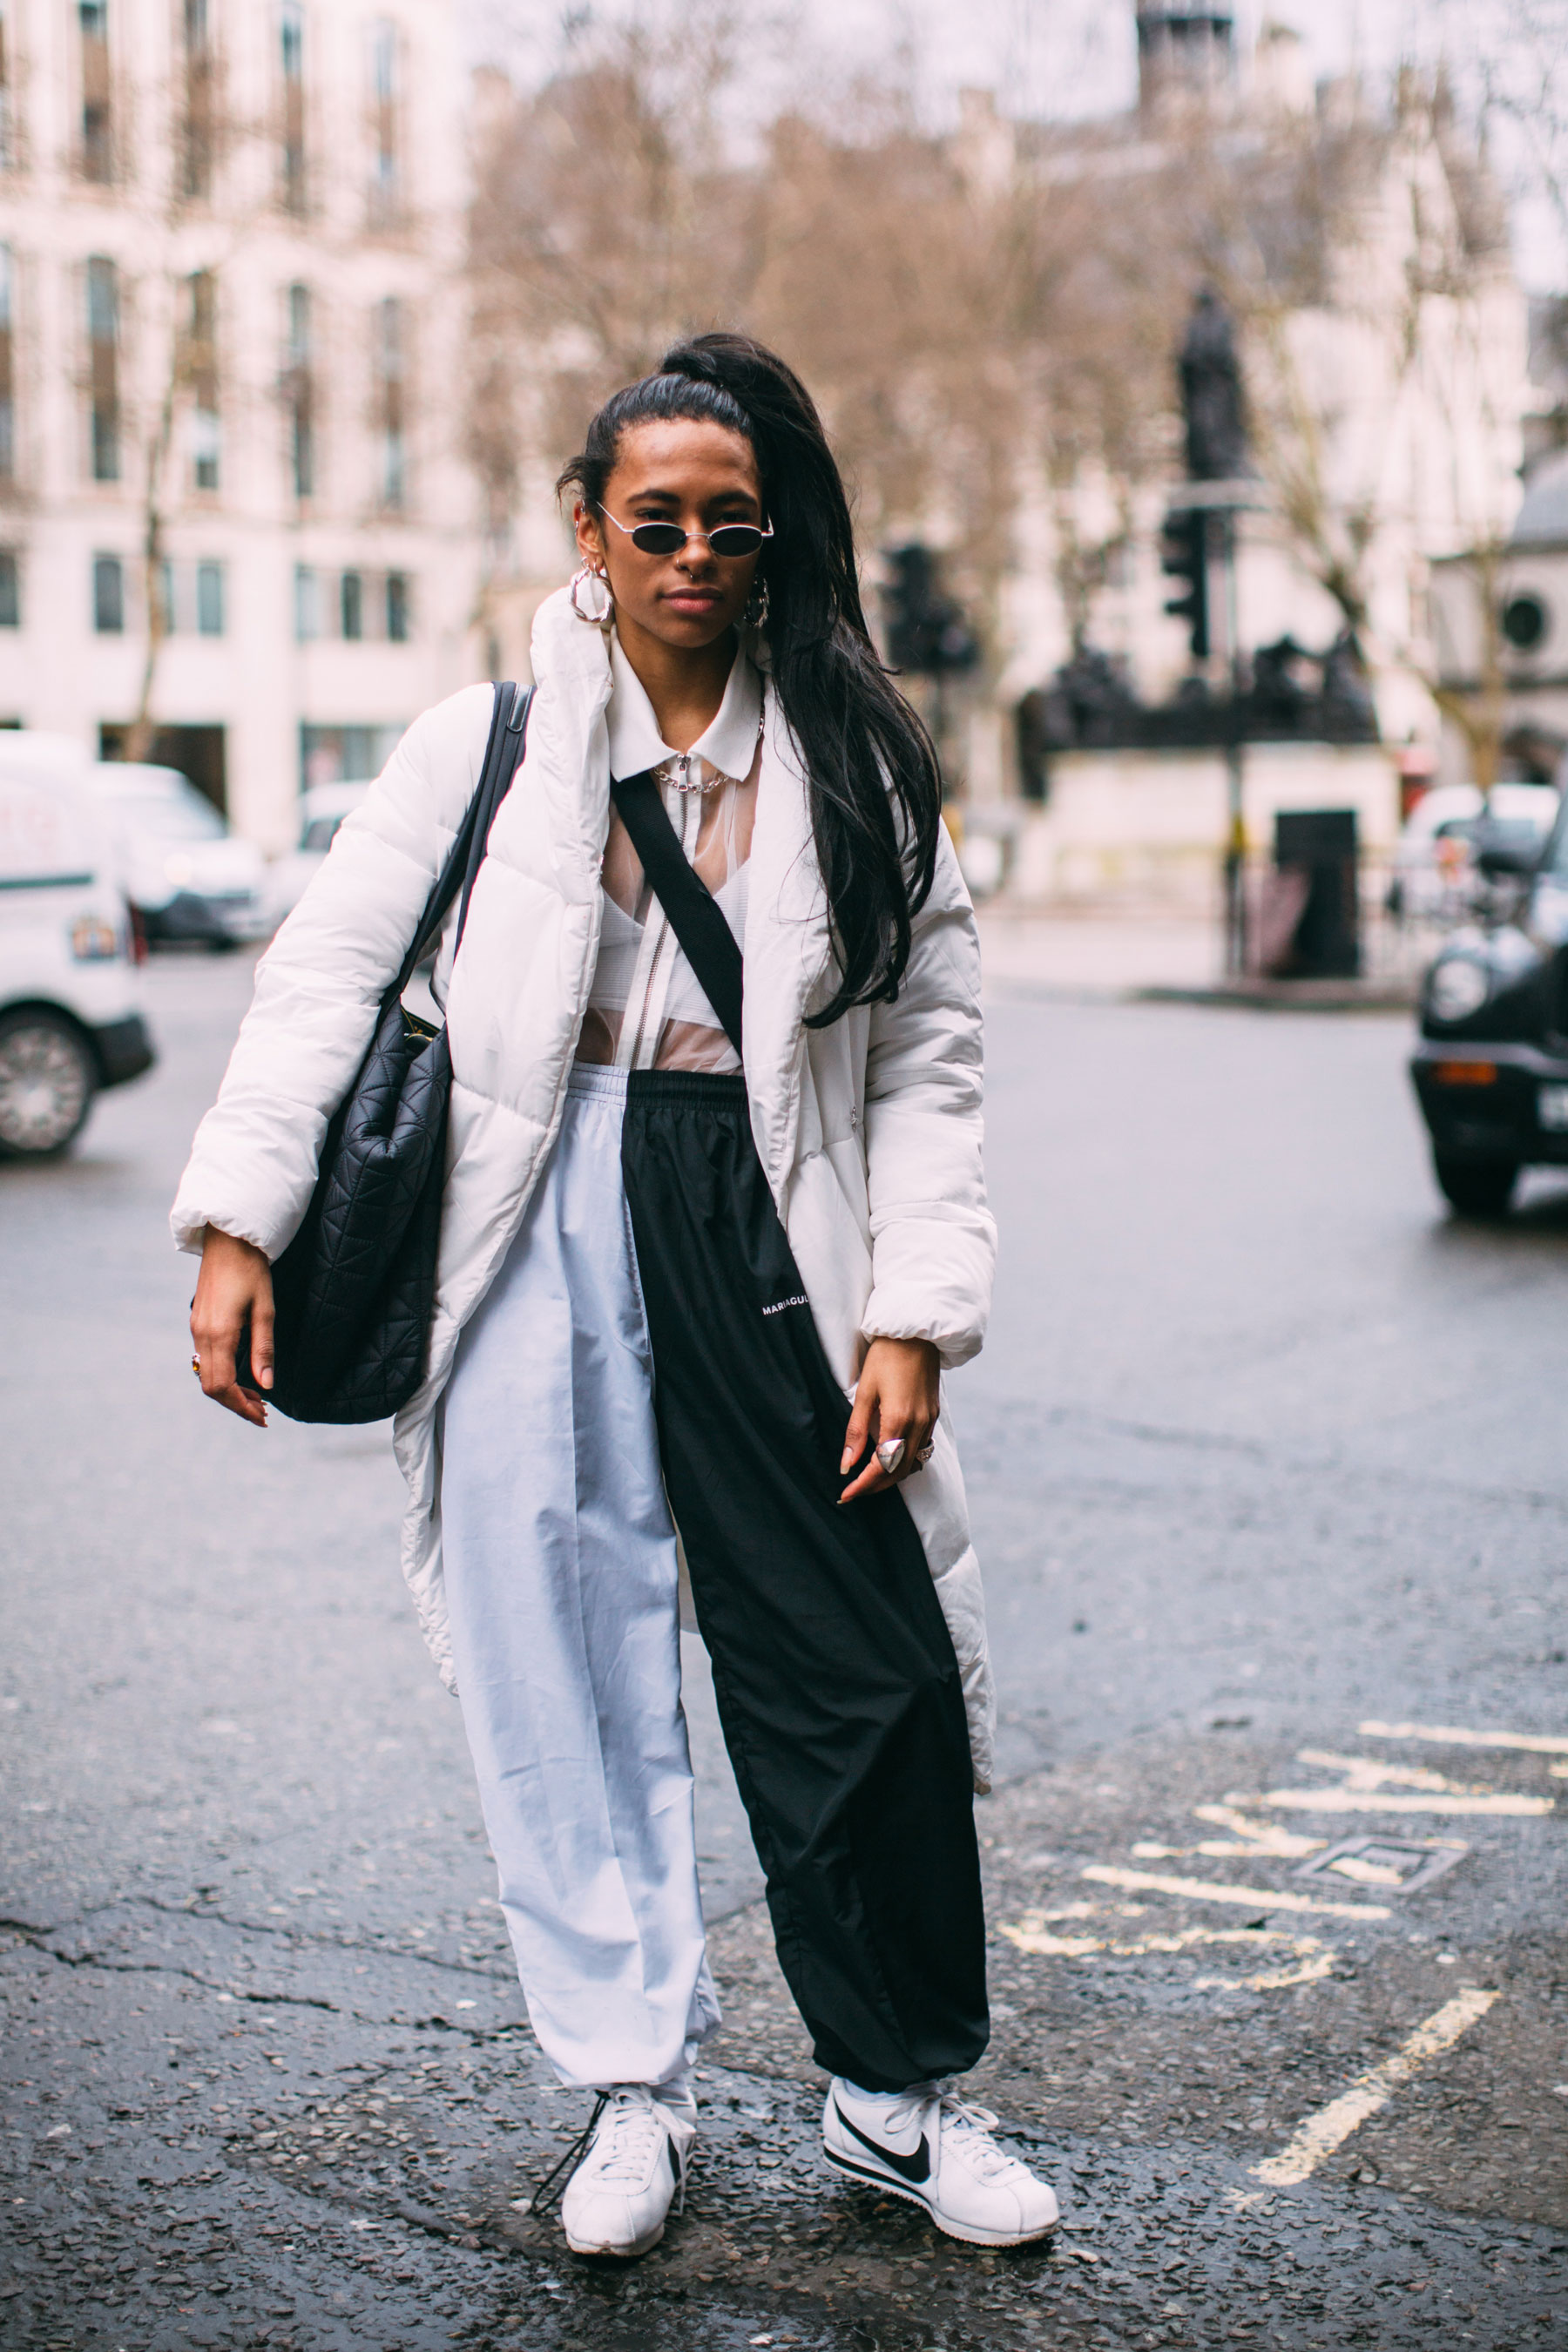 Style street london 5 recommendations to wear for everyday in 2019